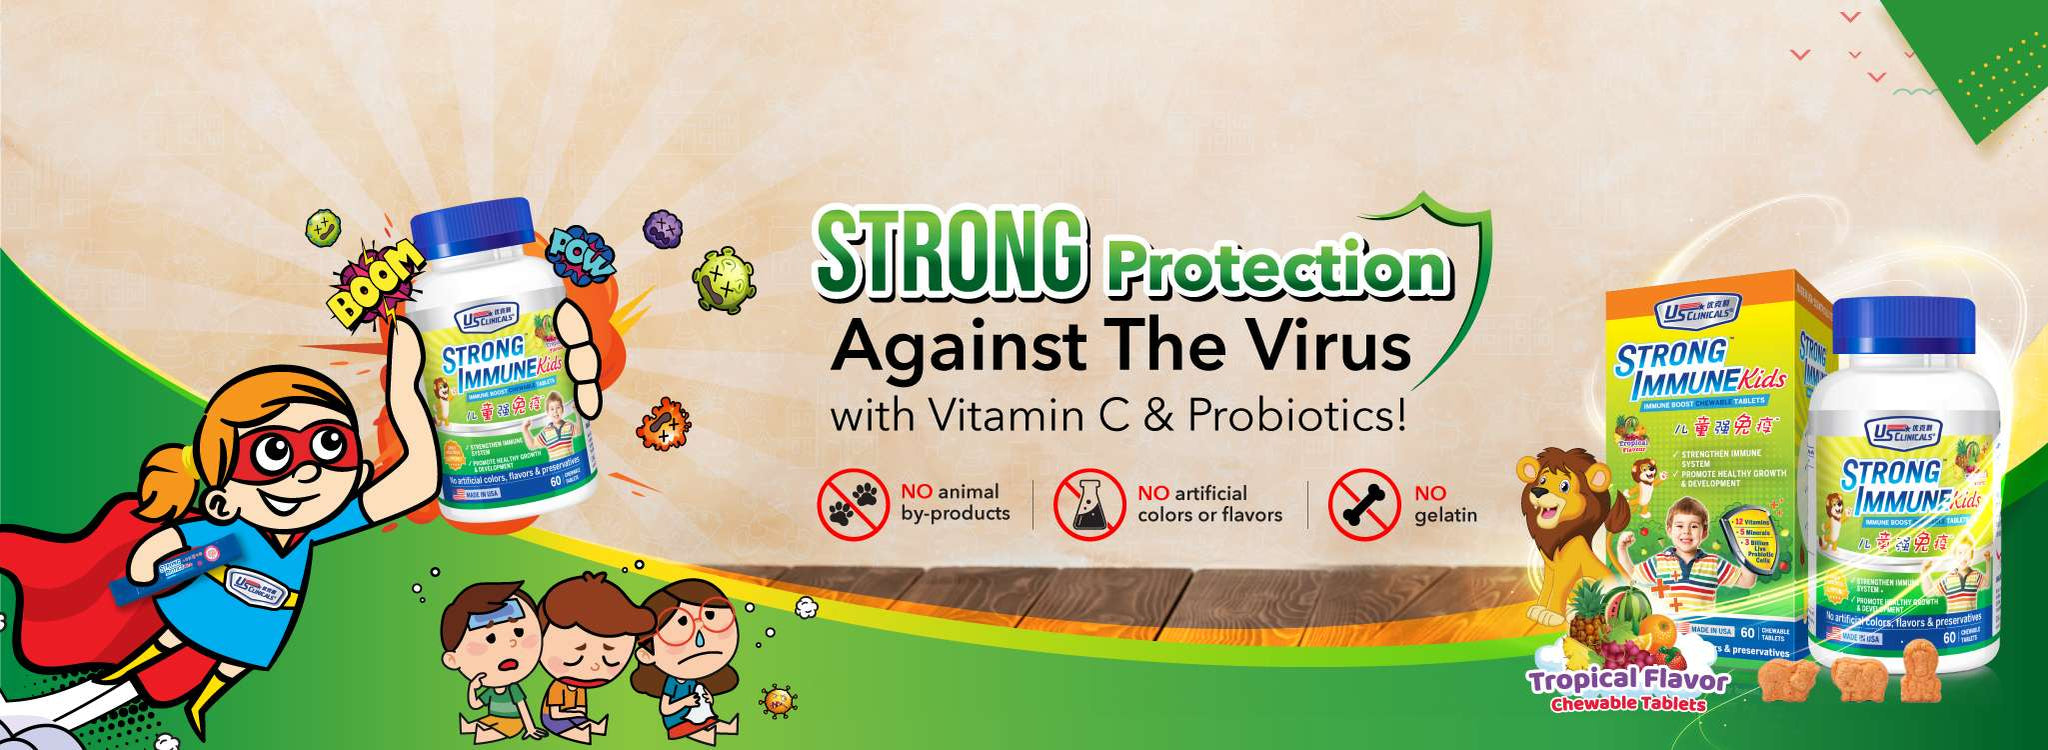 Strong protection against the virus